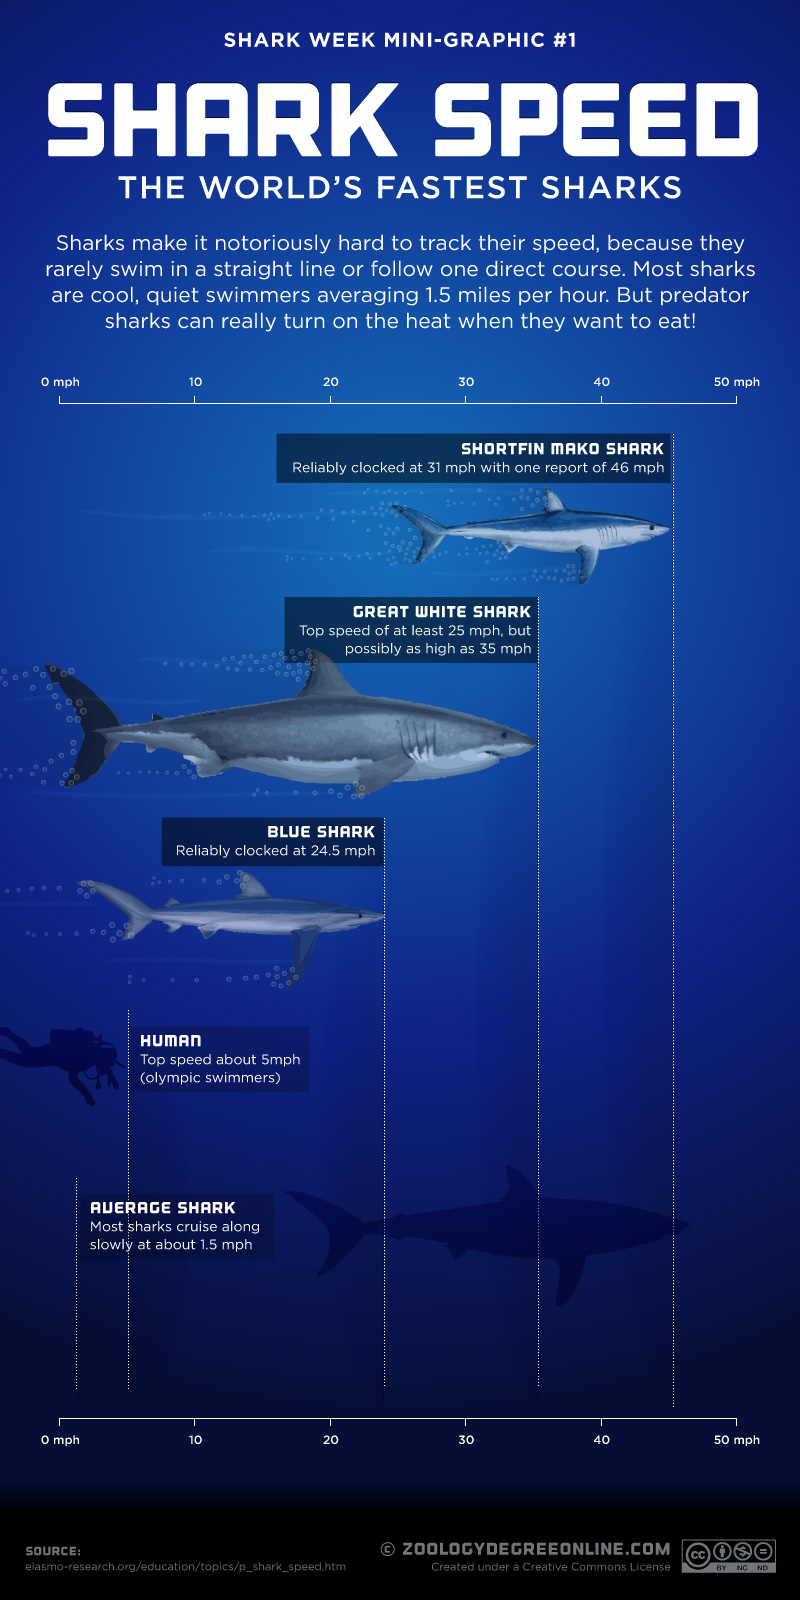 Shark Speed – The World's Fastest Sharks